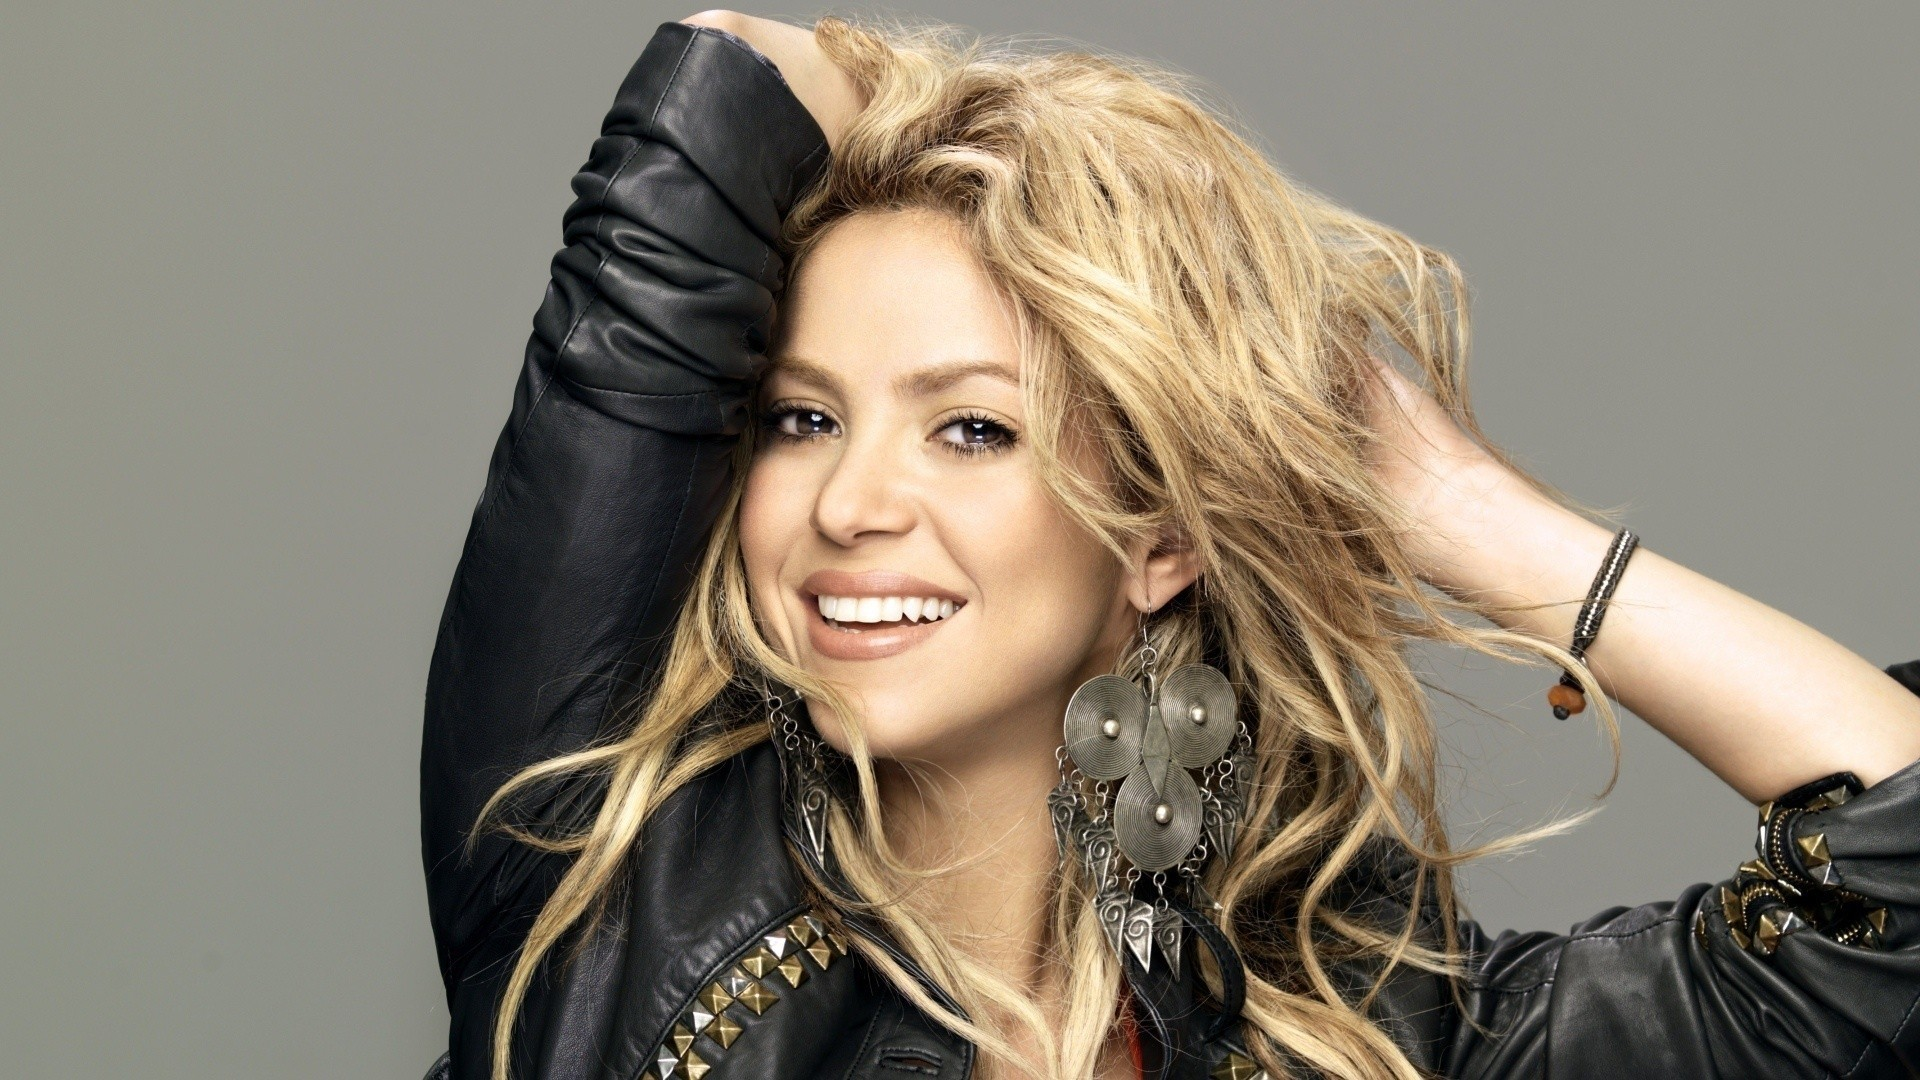 Desktop Backgrounds Shakira 2014 Free 15 Thumb